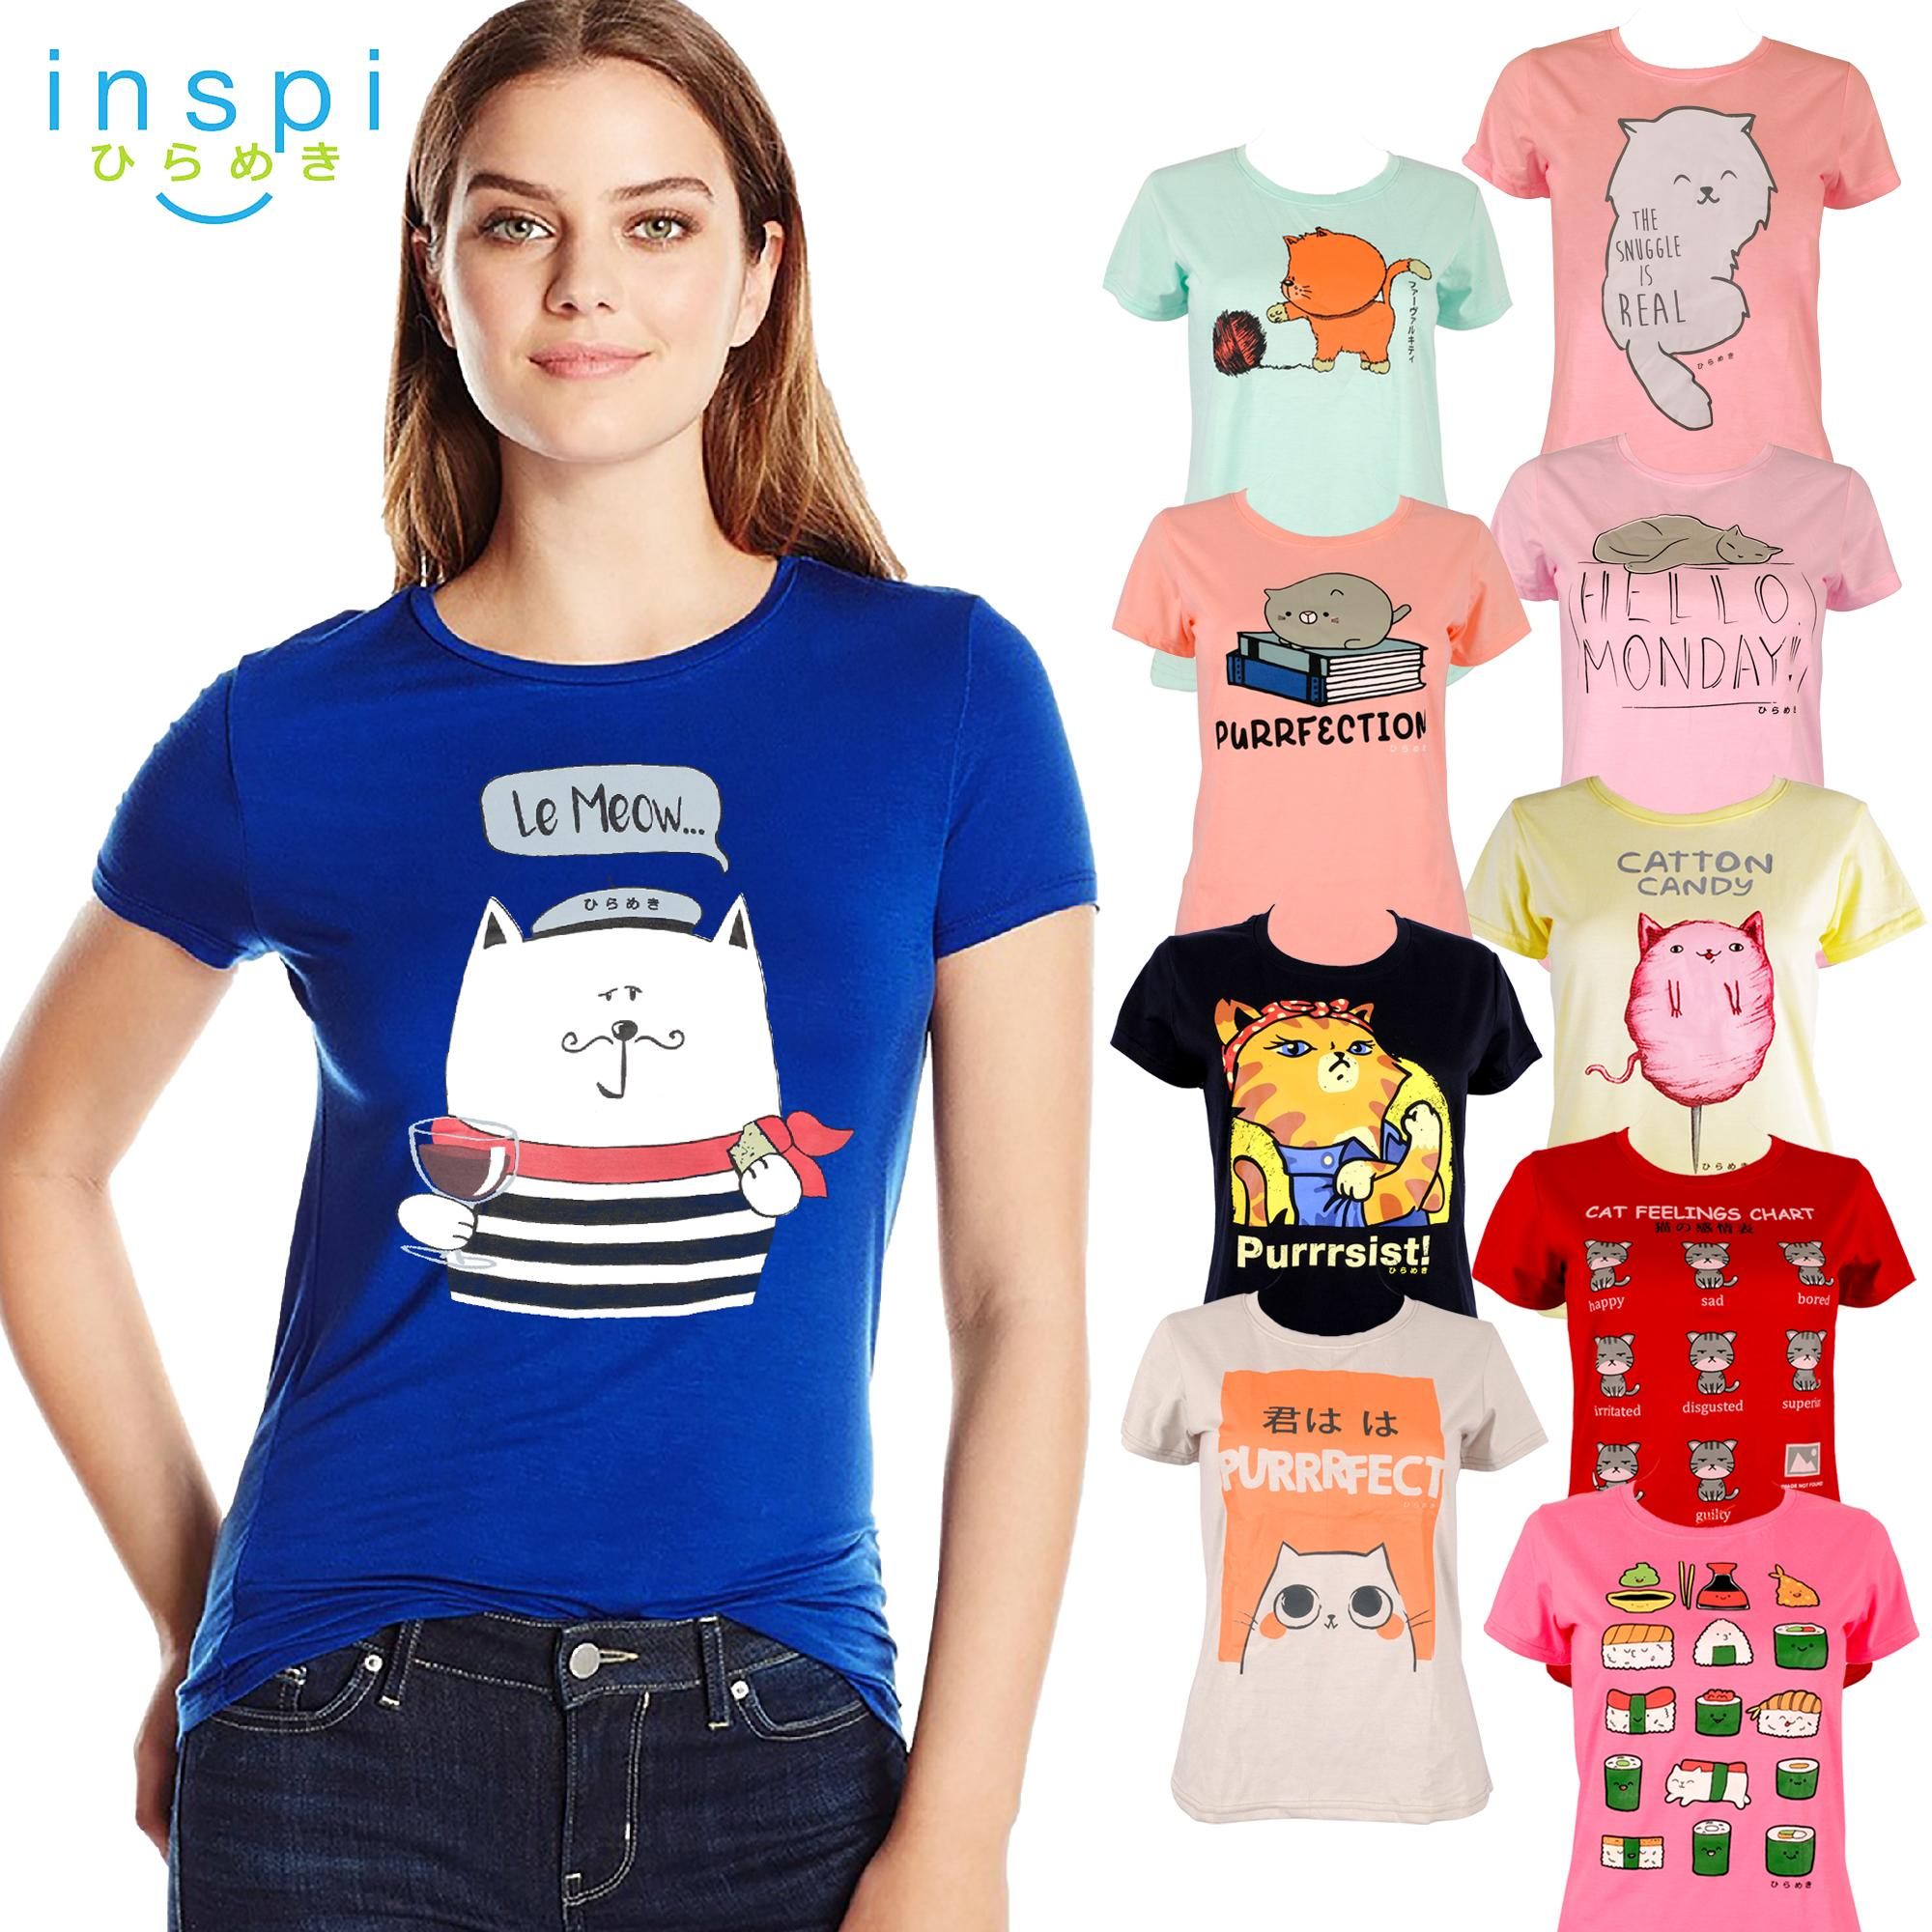 787ea867 INSPI Tees Ladies Neko Collection tshirt printed graphic tee Ladies t shirt  shirts women tshirts for